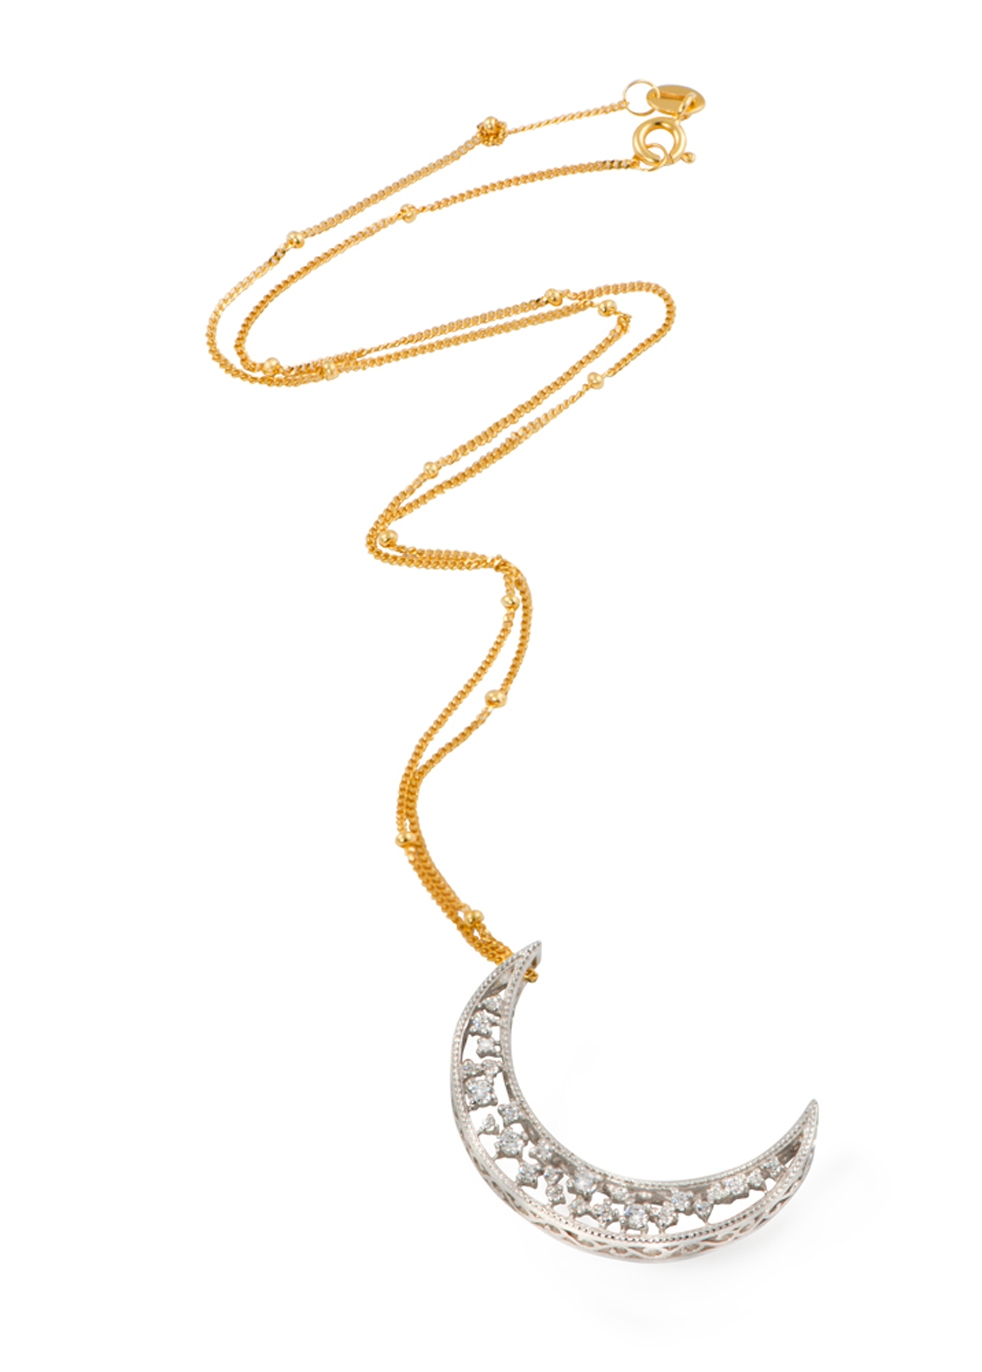 APPLES & FIGS Celestial Crescent Moon Pendant